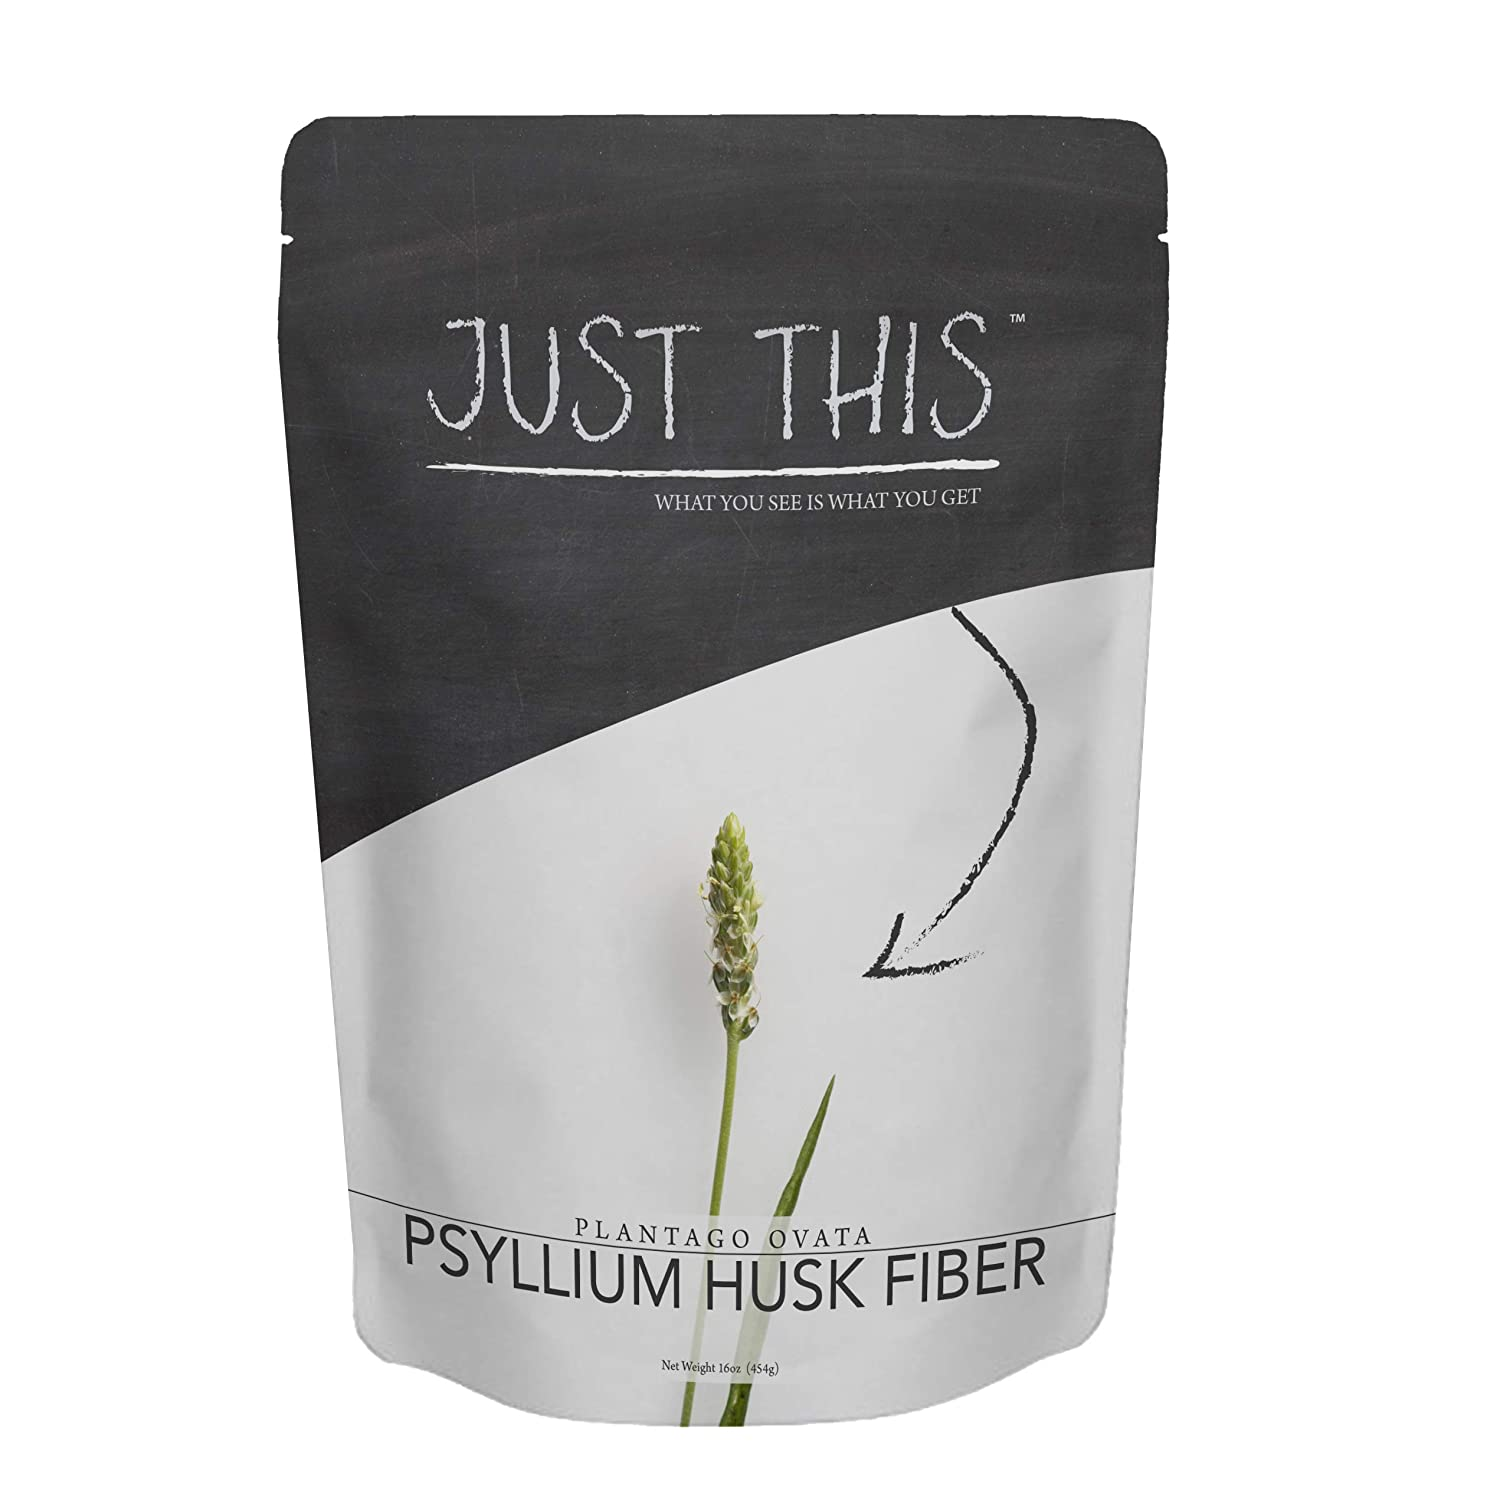 Super Natural Psyllium Husk Fiber Powder Premium Soluble Fiber Supplement And Prebiotic Simply Mix With Water Or Use In Baking To Aid Constipation And Spiritservingveterans Wood Chair Design Ideas Spiritservingveteransorg